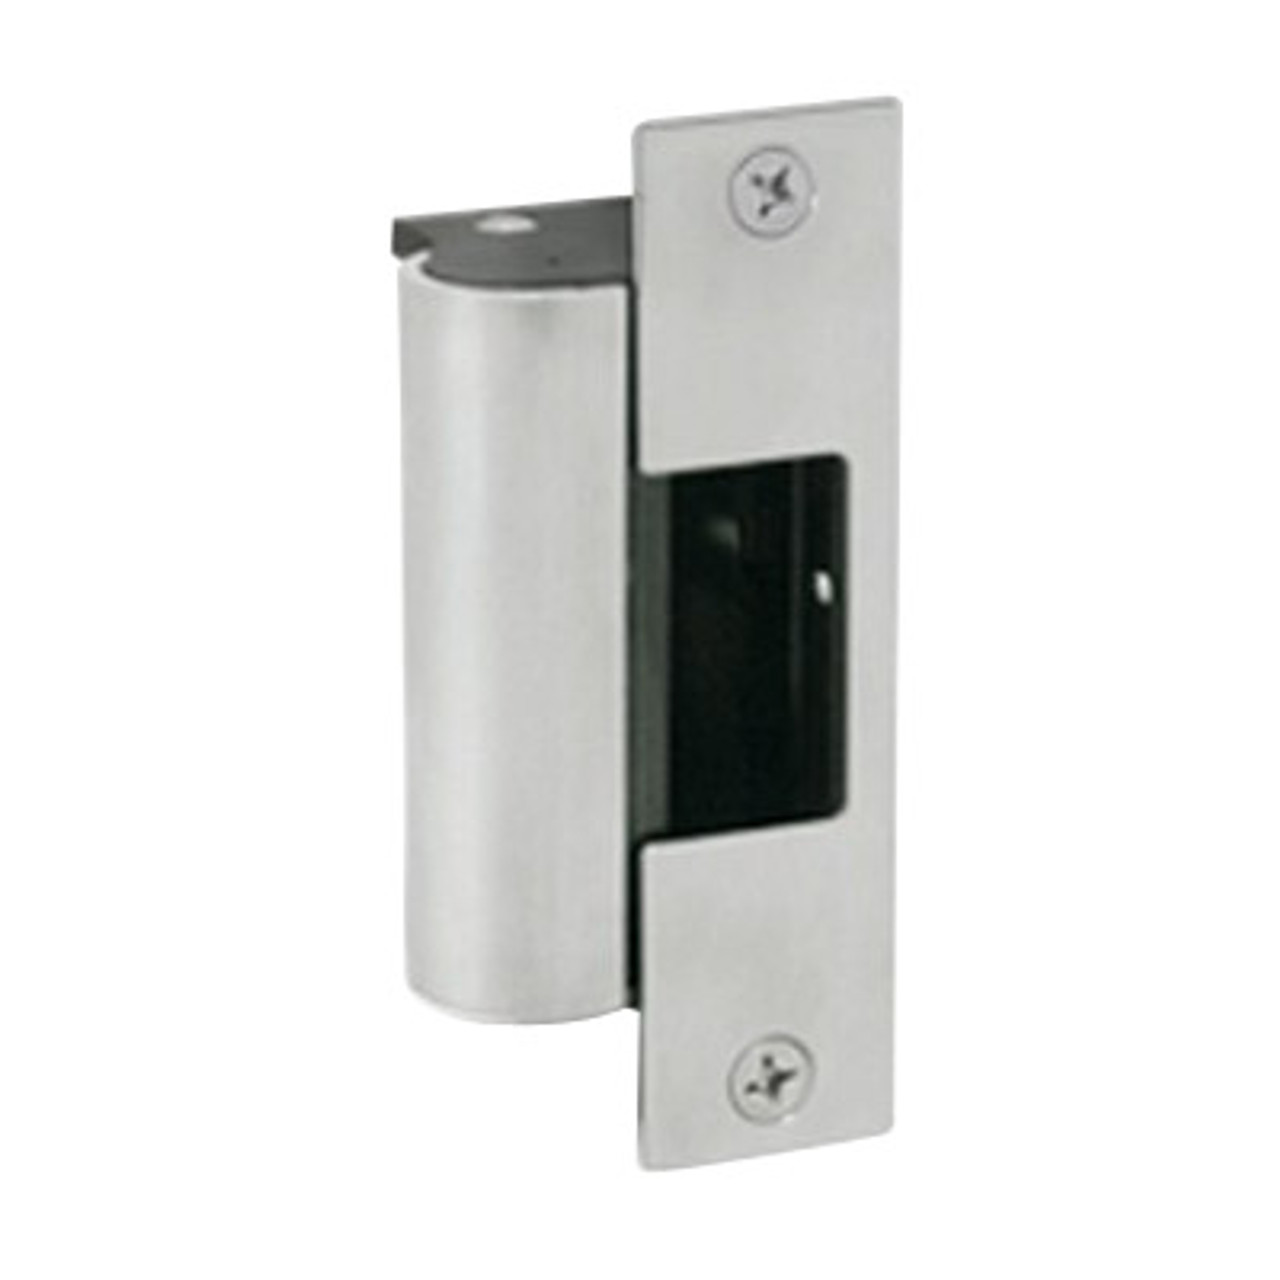 1006-F-630-LBSM Hes Fail Safe Electric Strike Body with Latchbolt Strike Monitor in Satin Stainless Finish